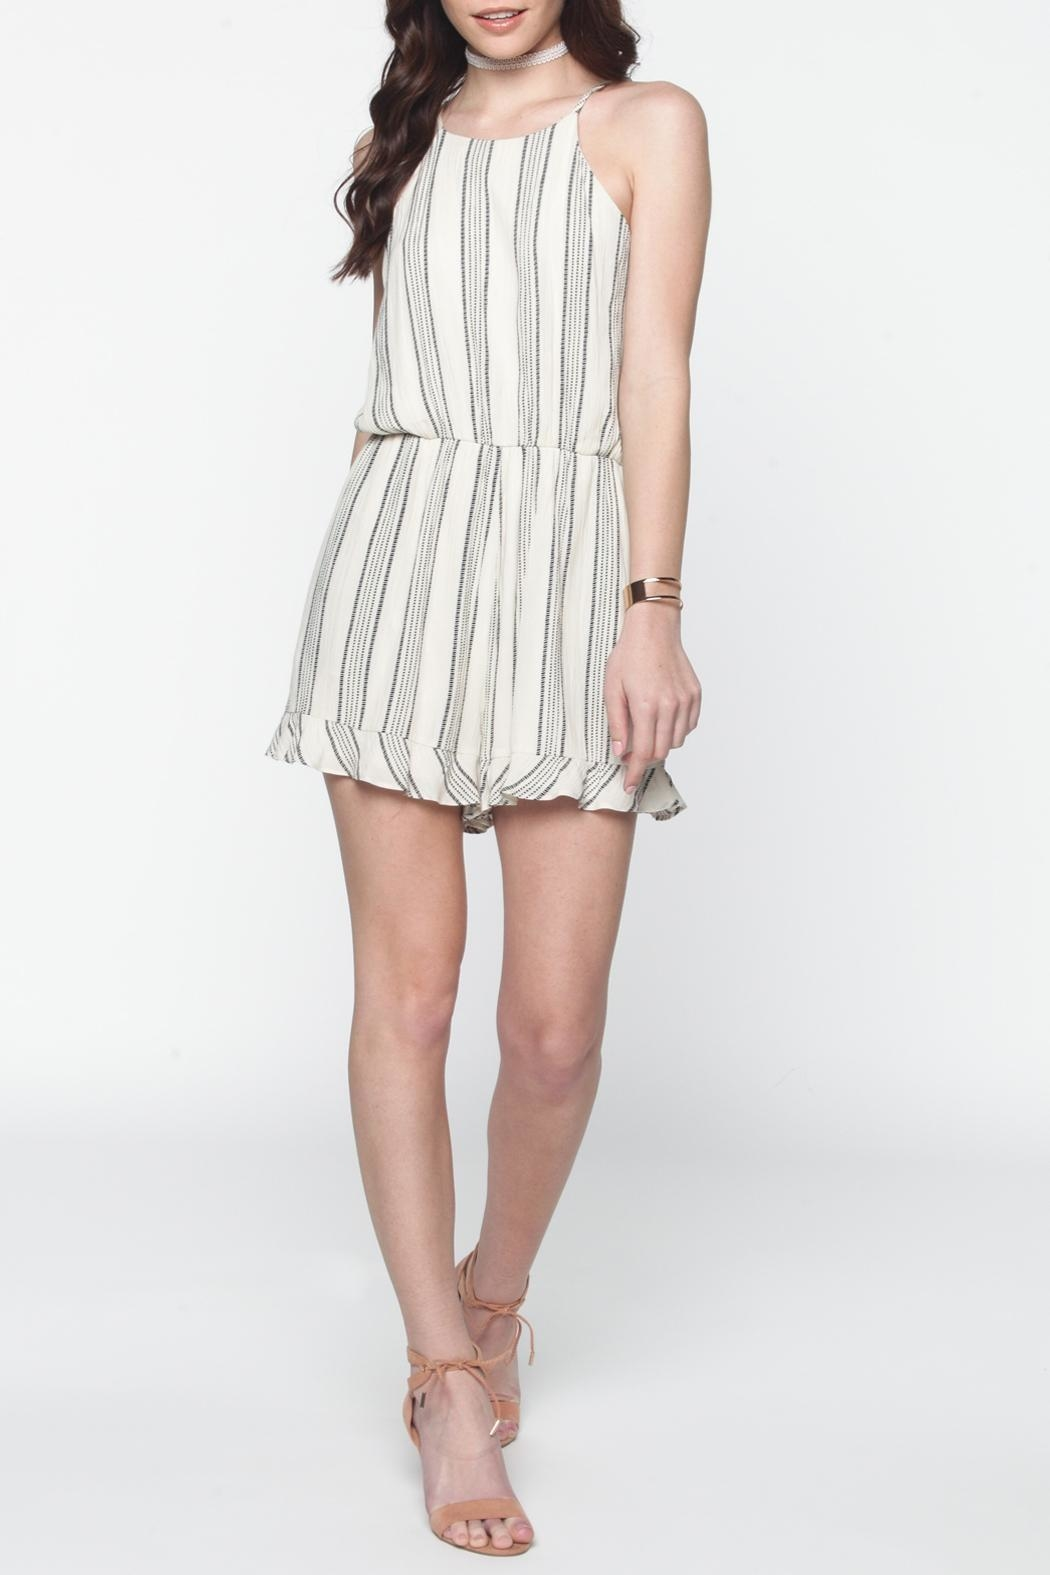 Everly Striped Bow-Tie-Back Romper - Side Cropped Image